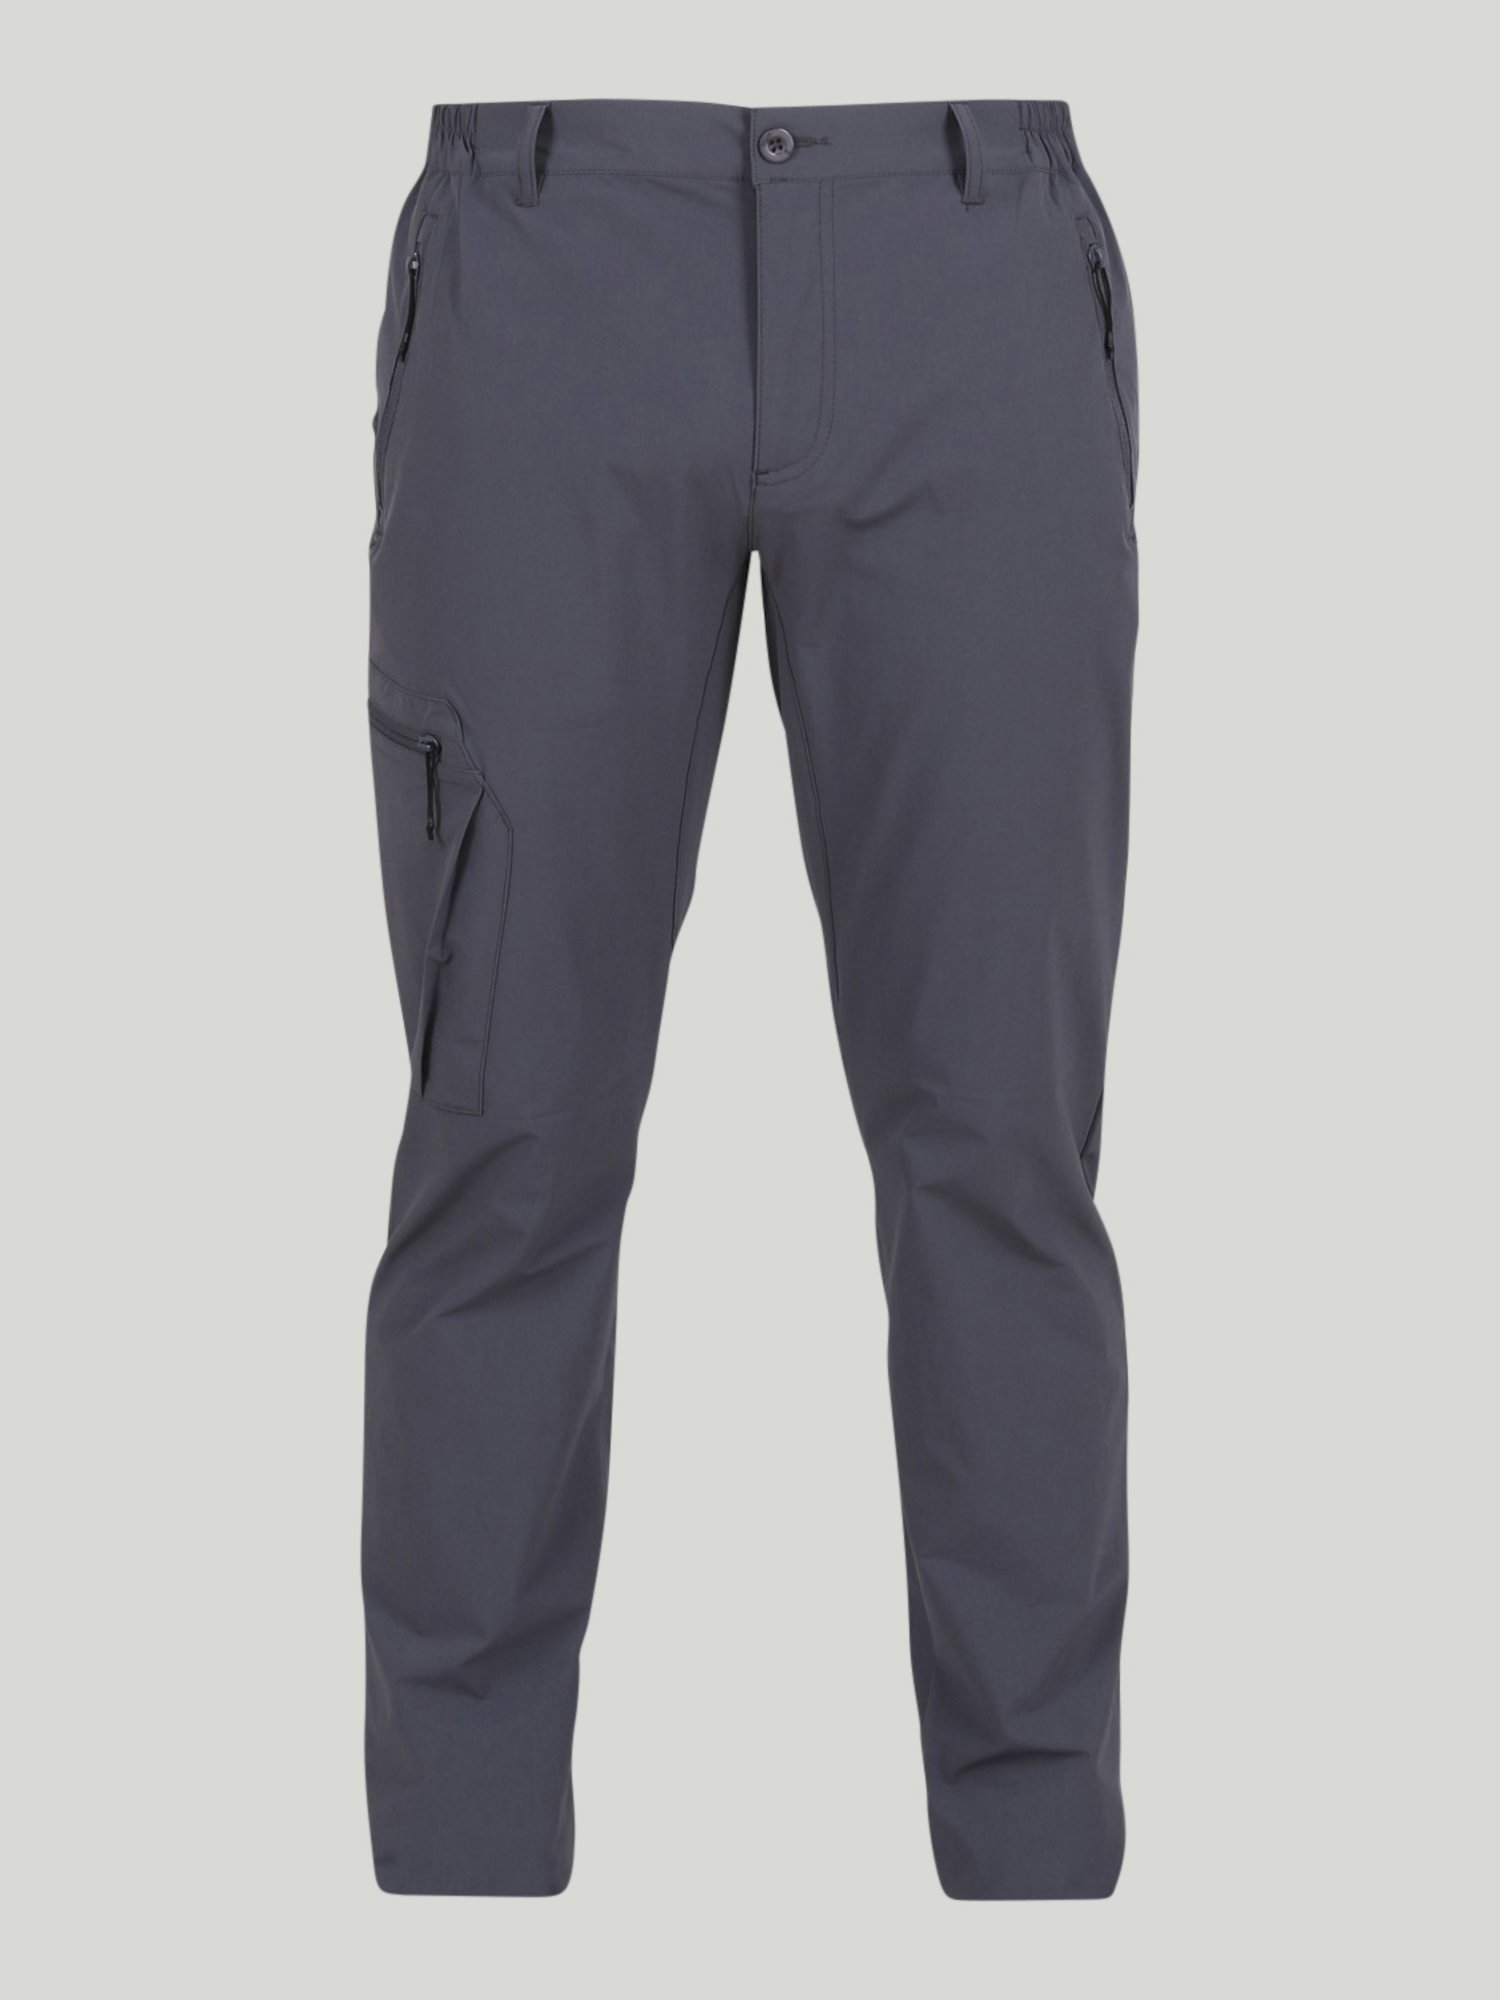 Trousers Cala Gonone - Anthrazit